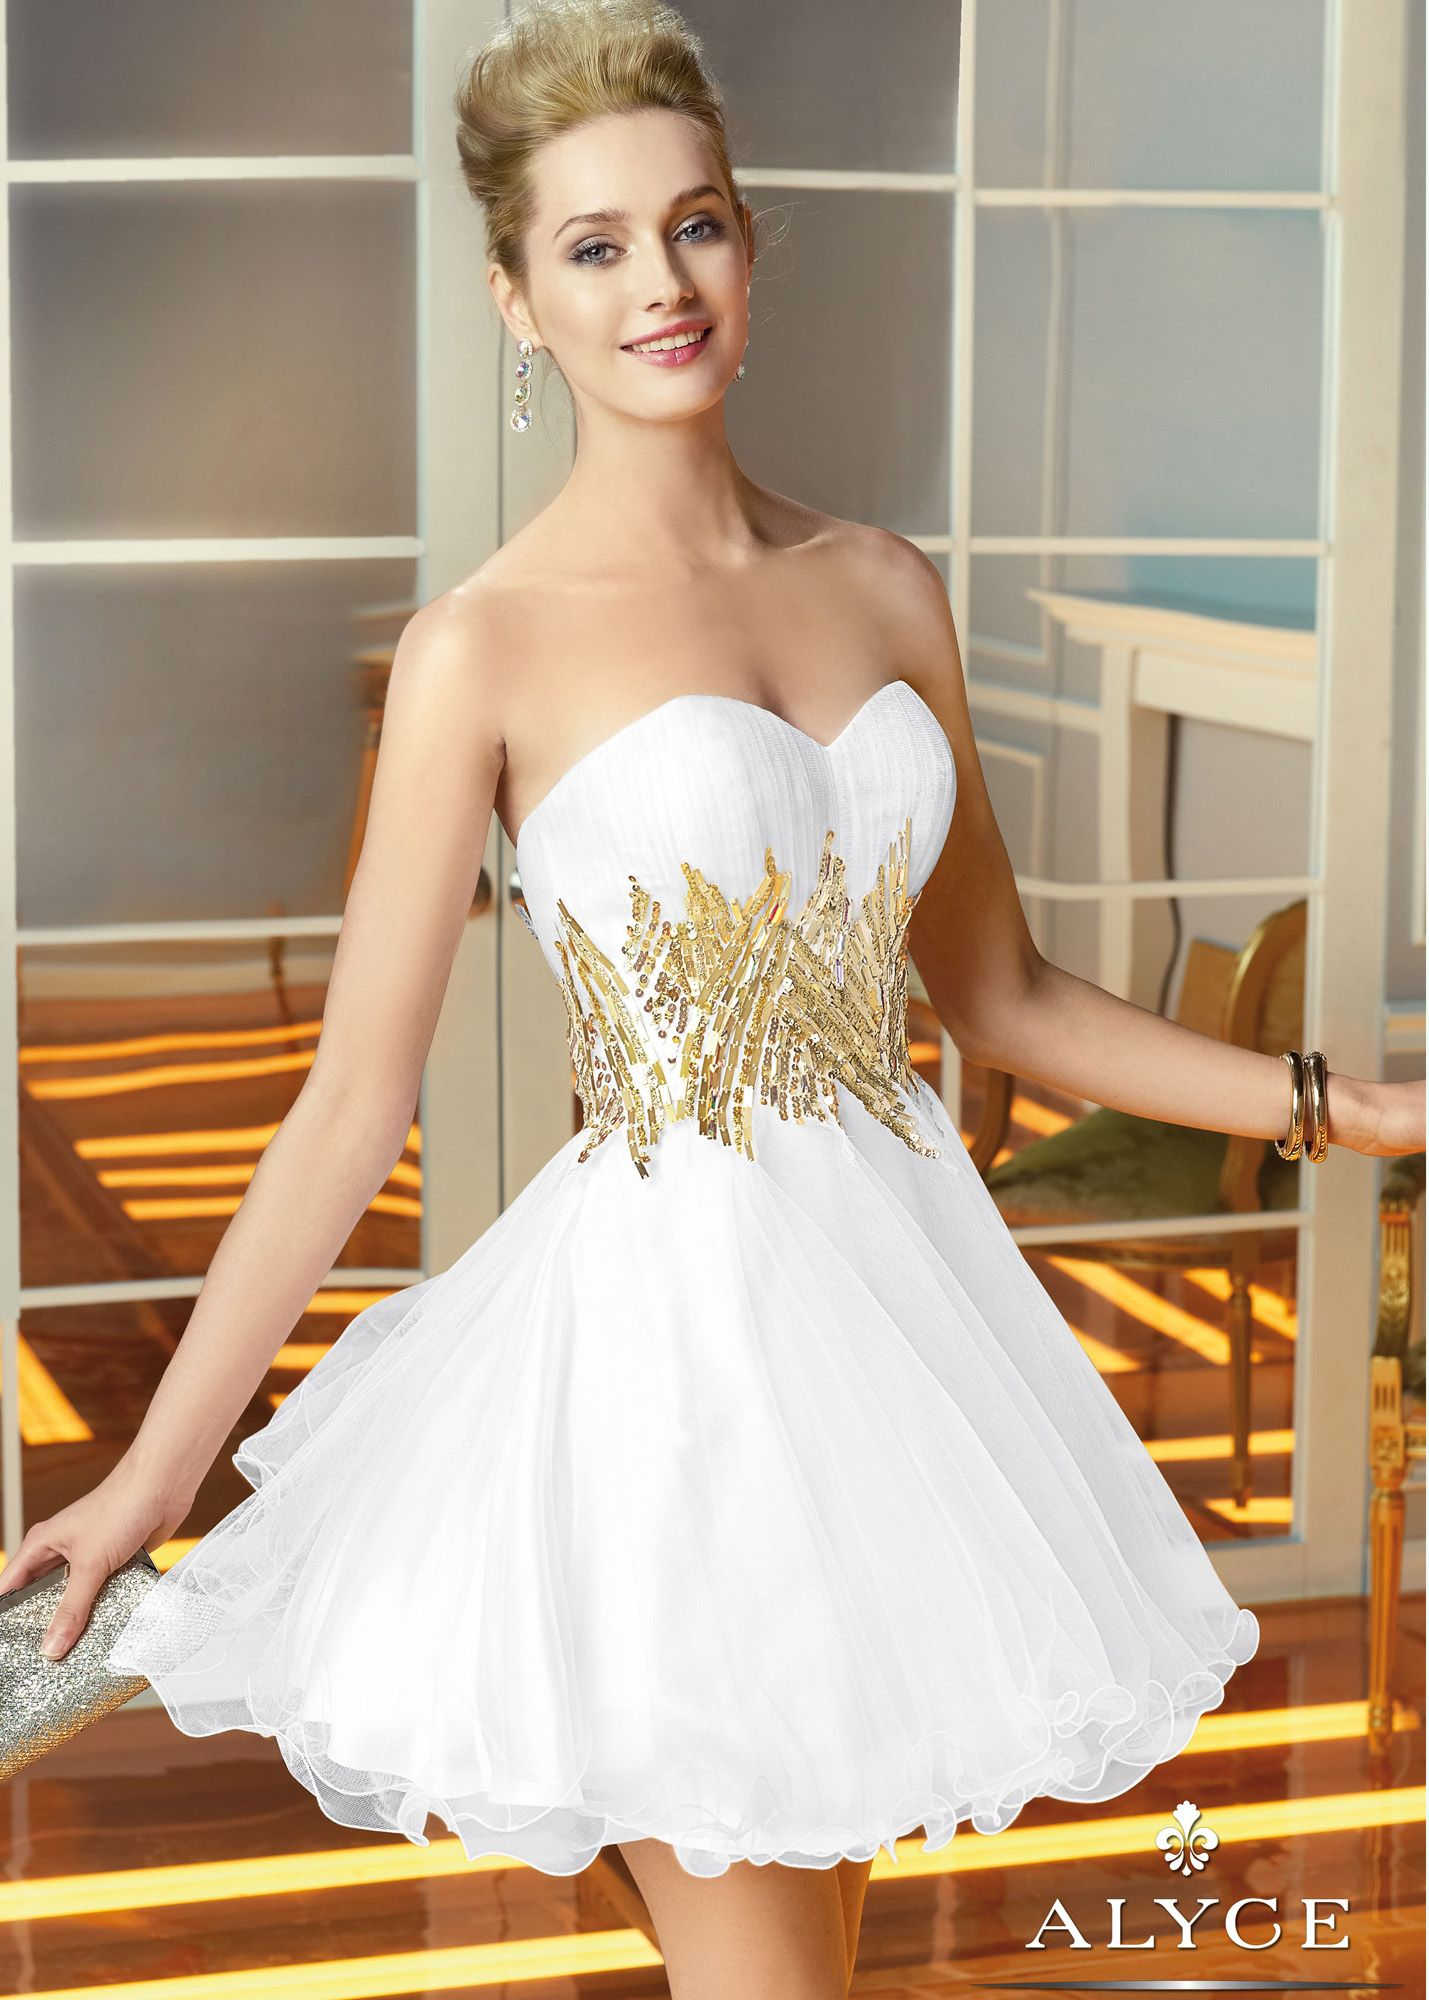 Alyce Paris 3580 - White Strapless Sweetheart Sequin Sweet 16 ...